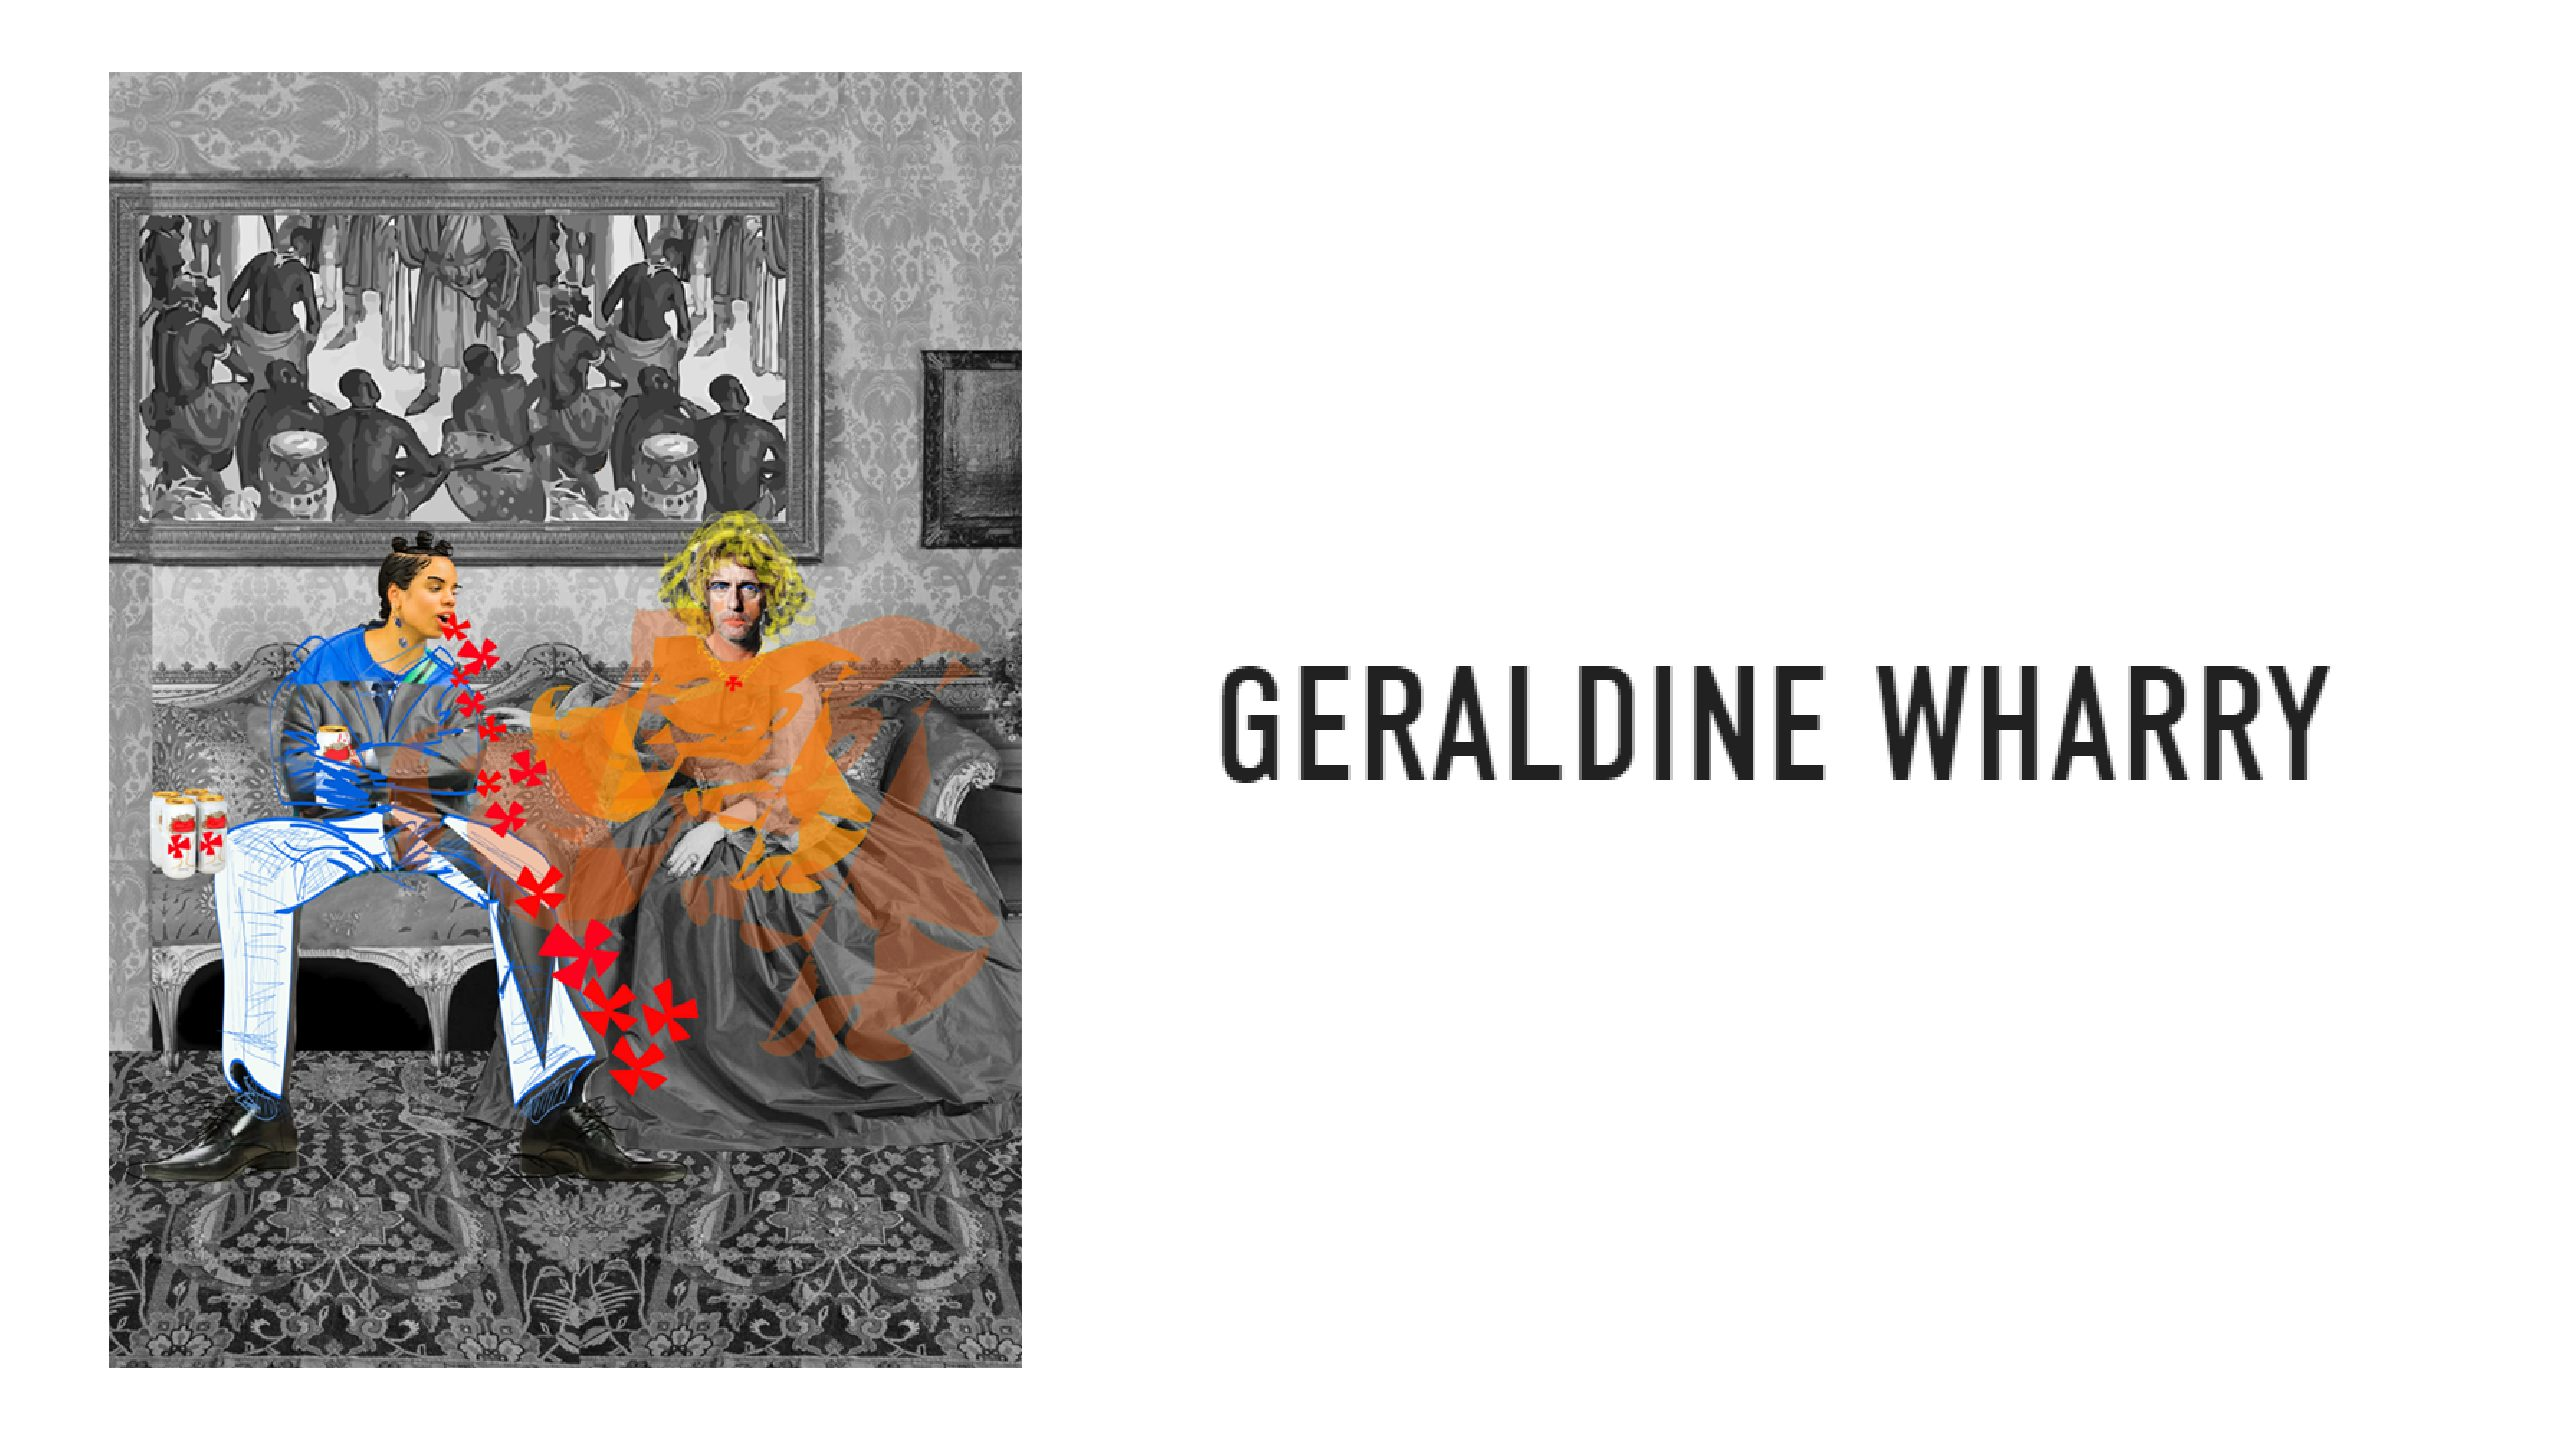 Geraldine Wharry – DECOLONISING AFRO AESTHETICS IN THE FASHION INDUSTRY – OP-ED BY KOURA ROSY-KANE